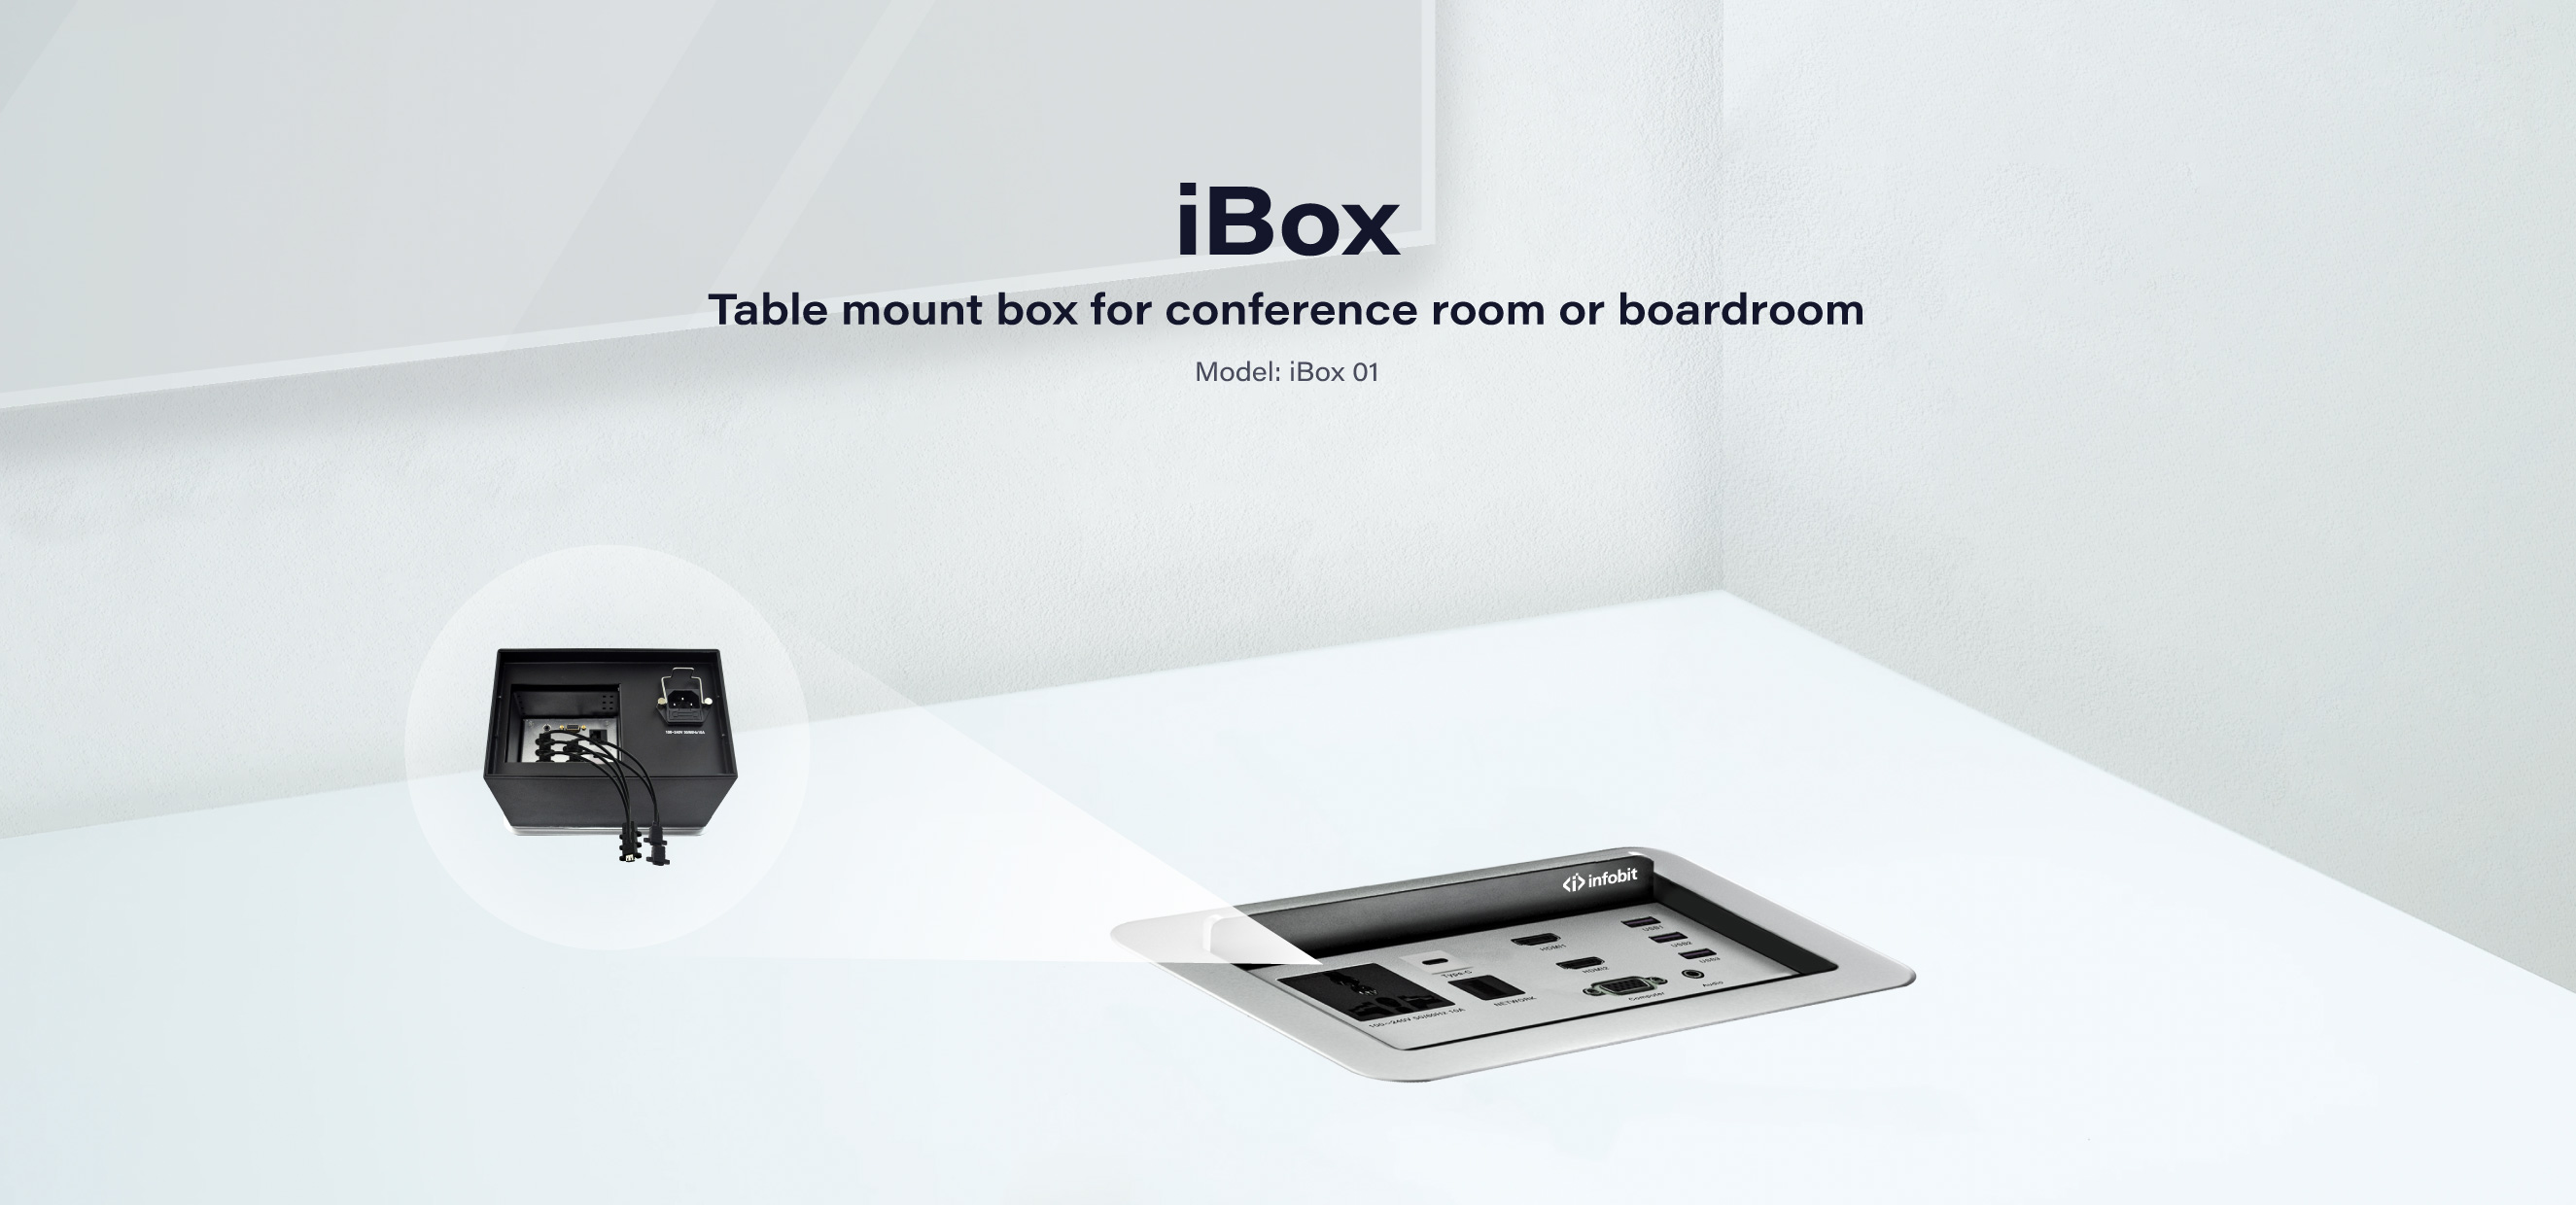 iBox 01: Table Mount Box for Conference